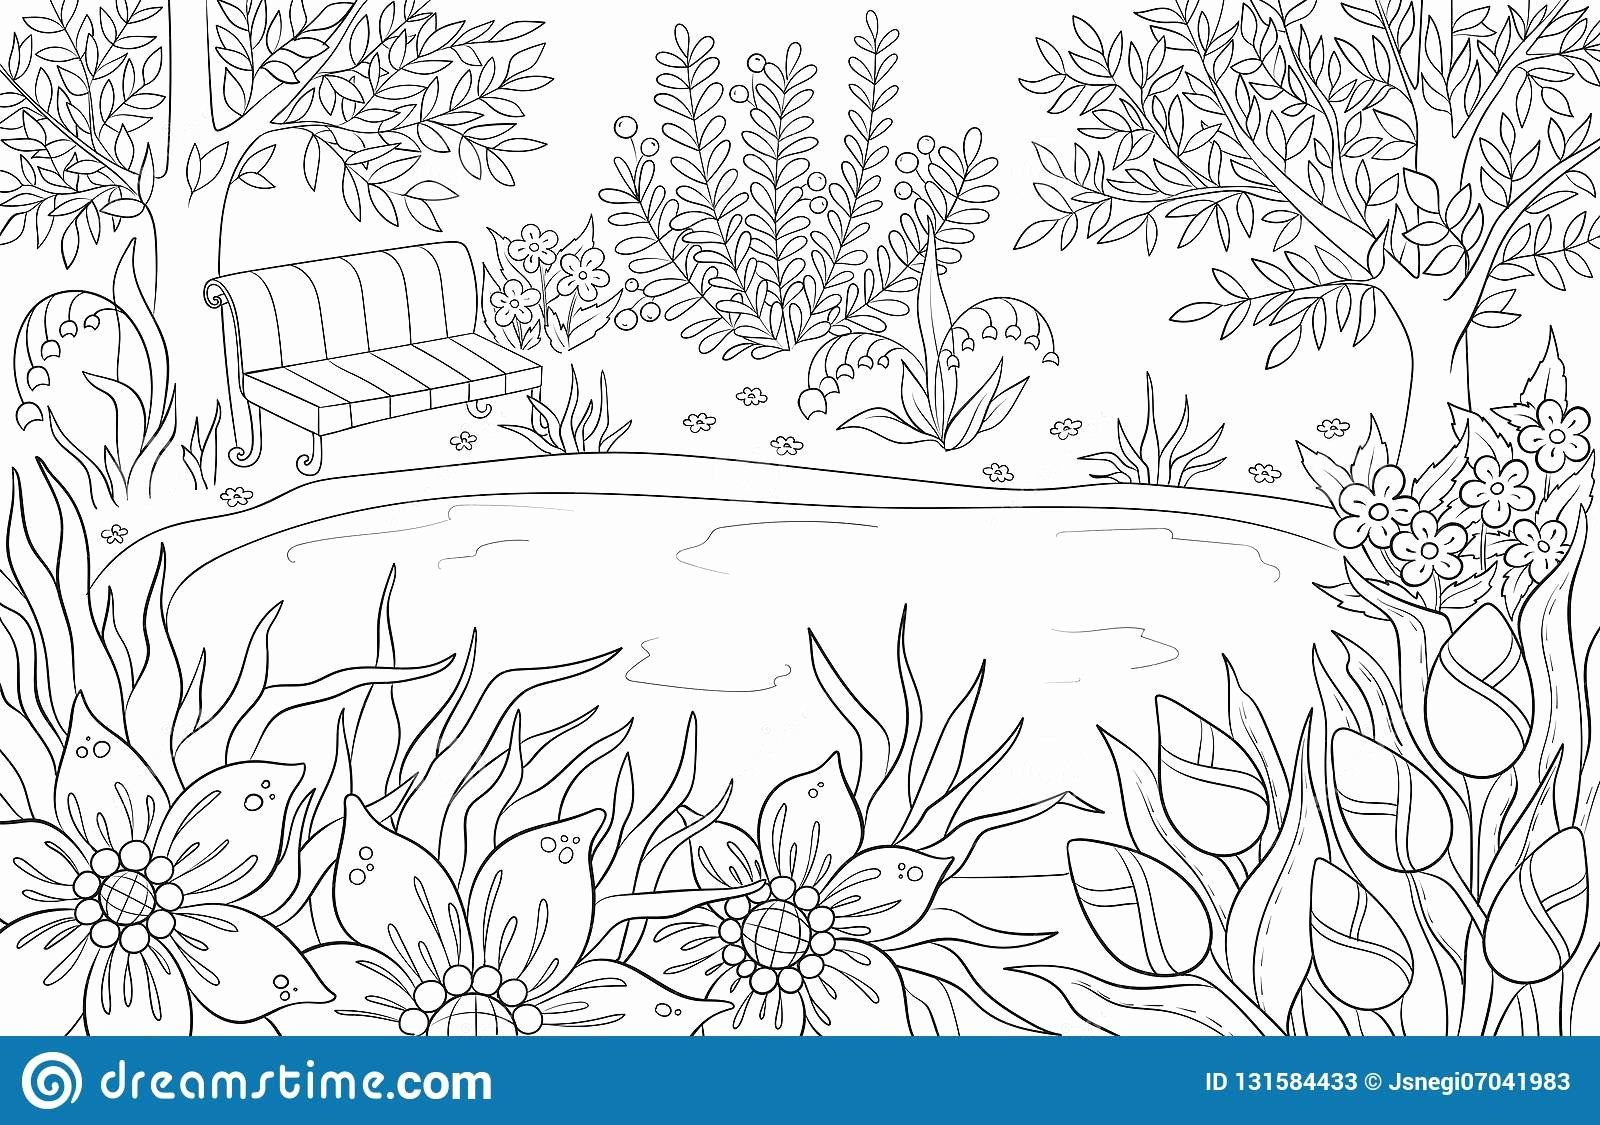 Coloring Flowers Water New Coloring Pages Lake Water Lily A Lake Flowers